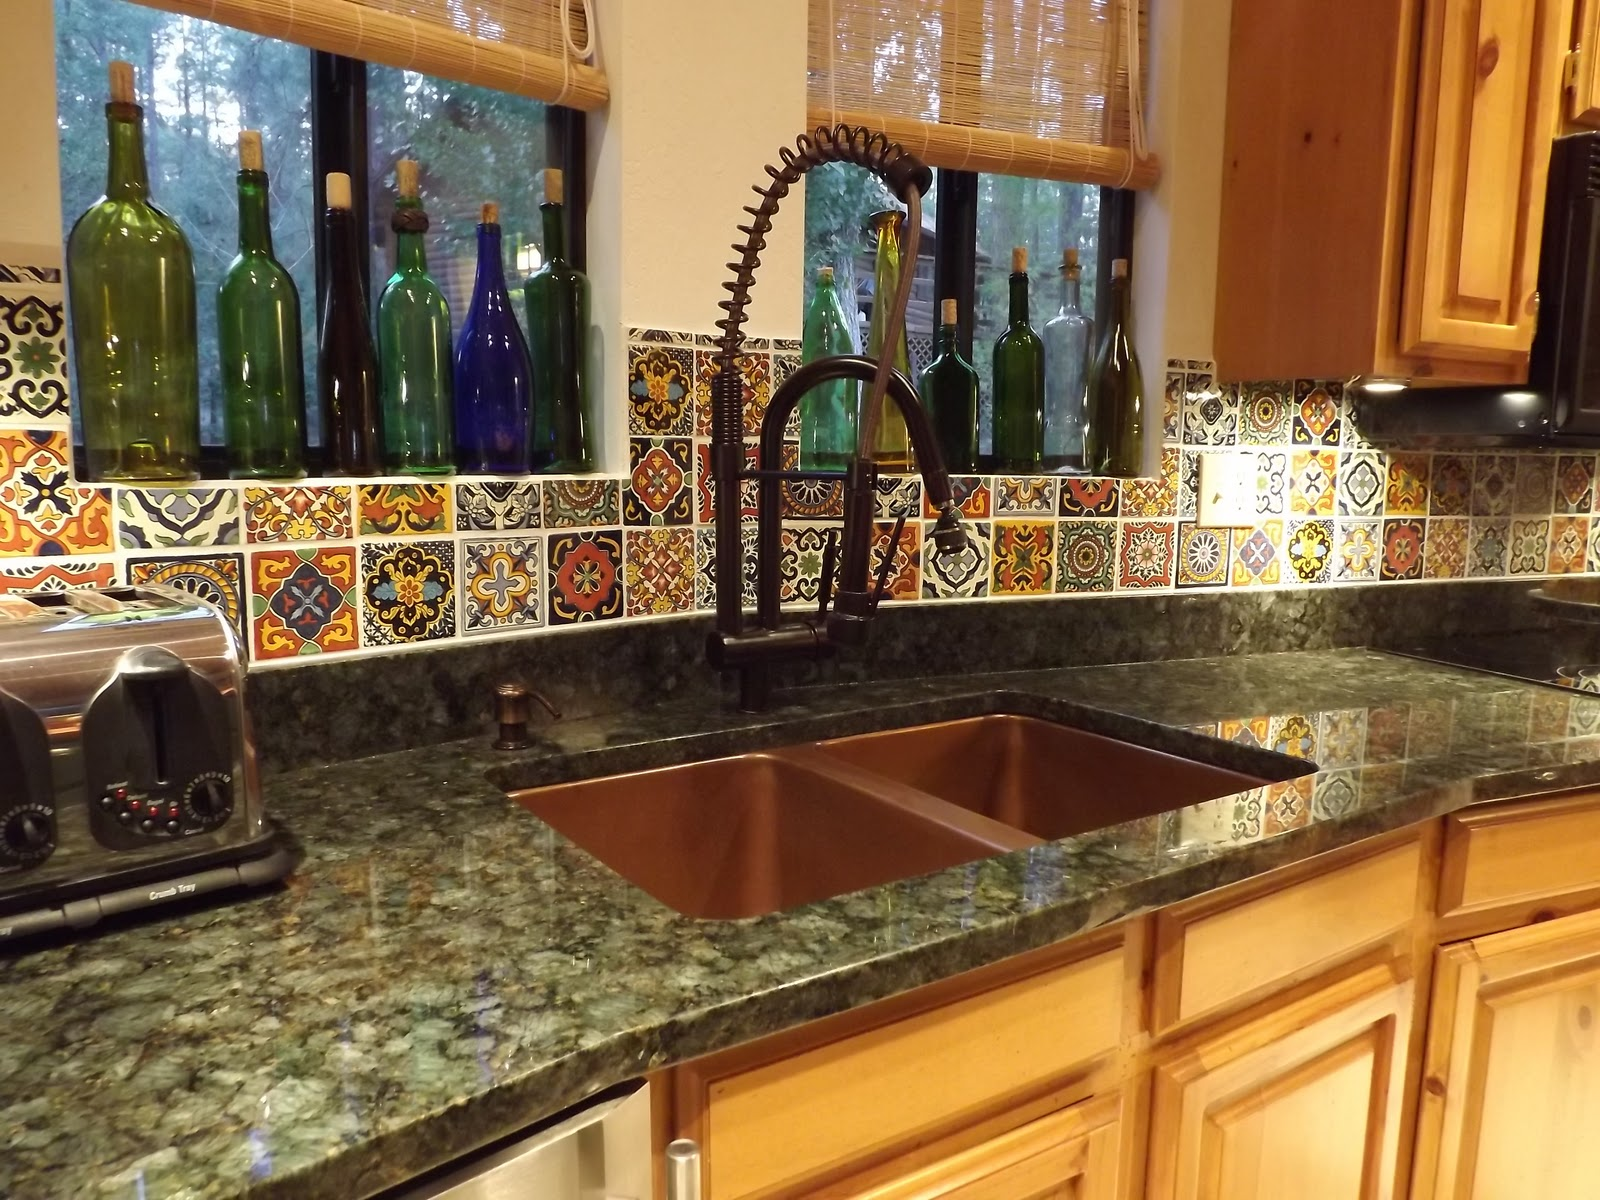 Spanish Tile Countertops Dusty Coyote Mountain House Kitchen Tour